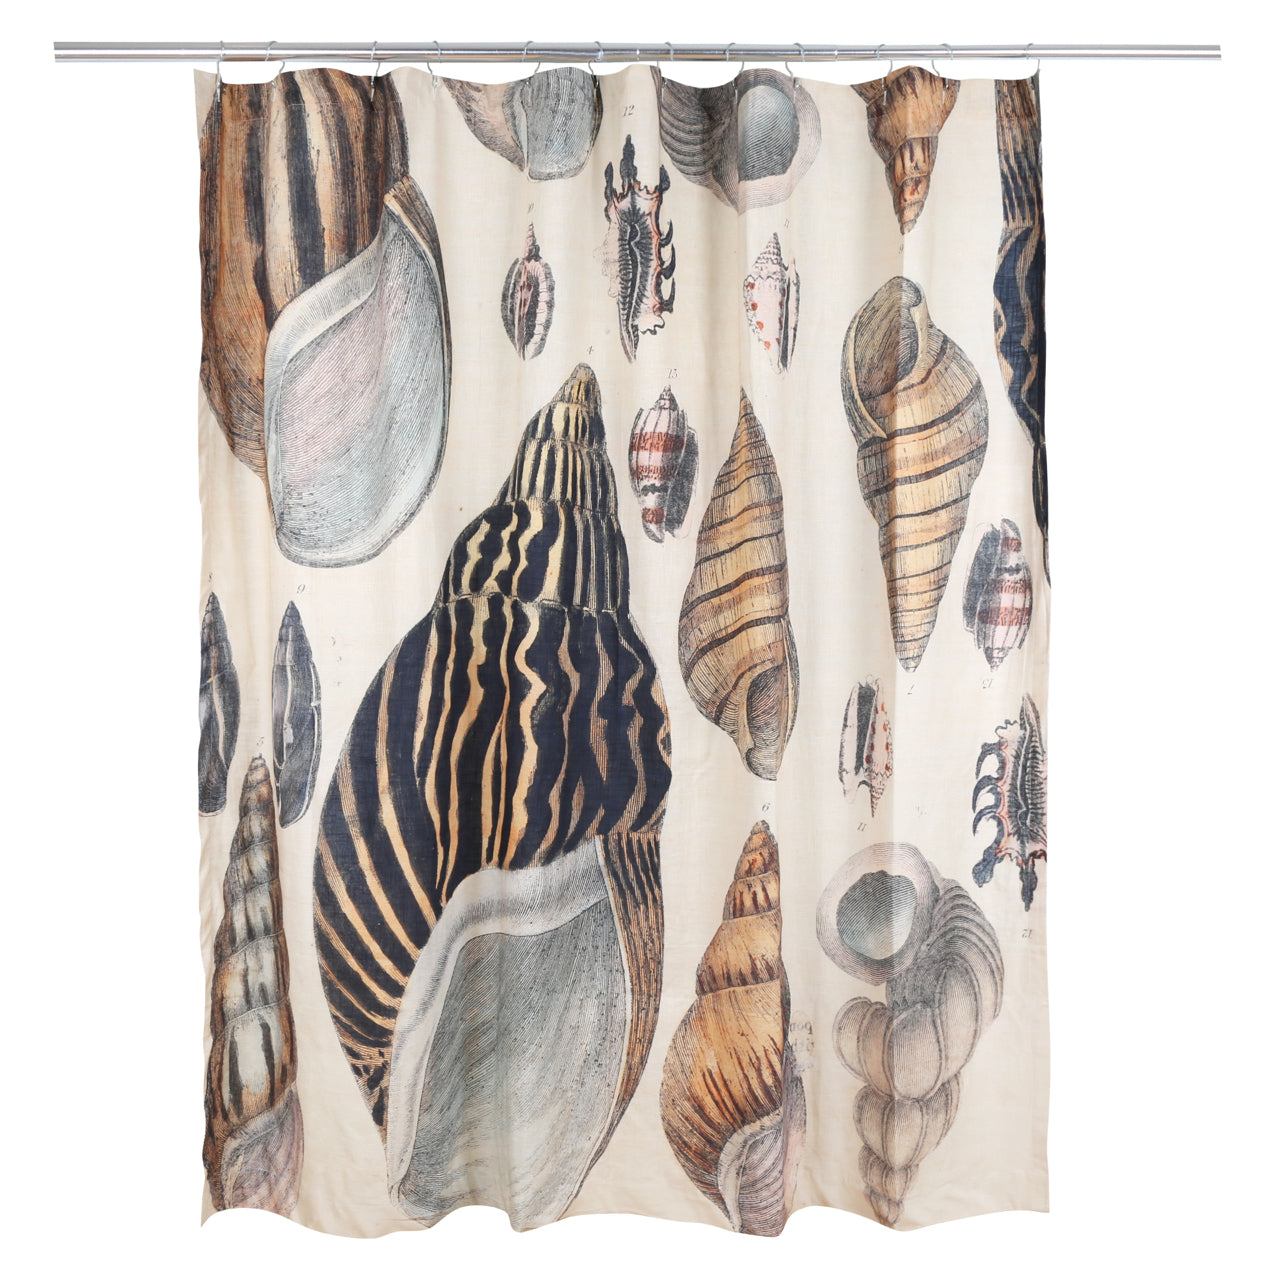 Siren Song Conch Shell Shower Curtain